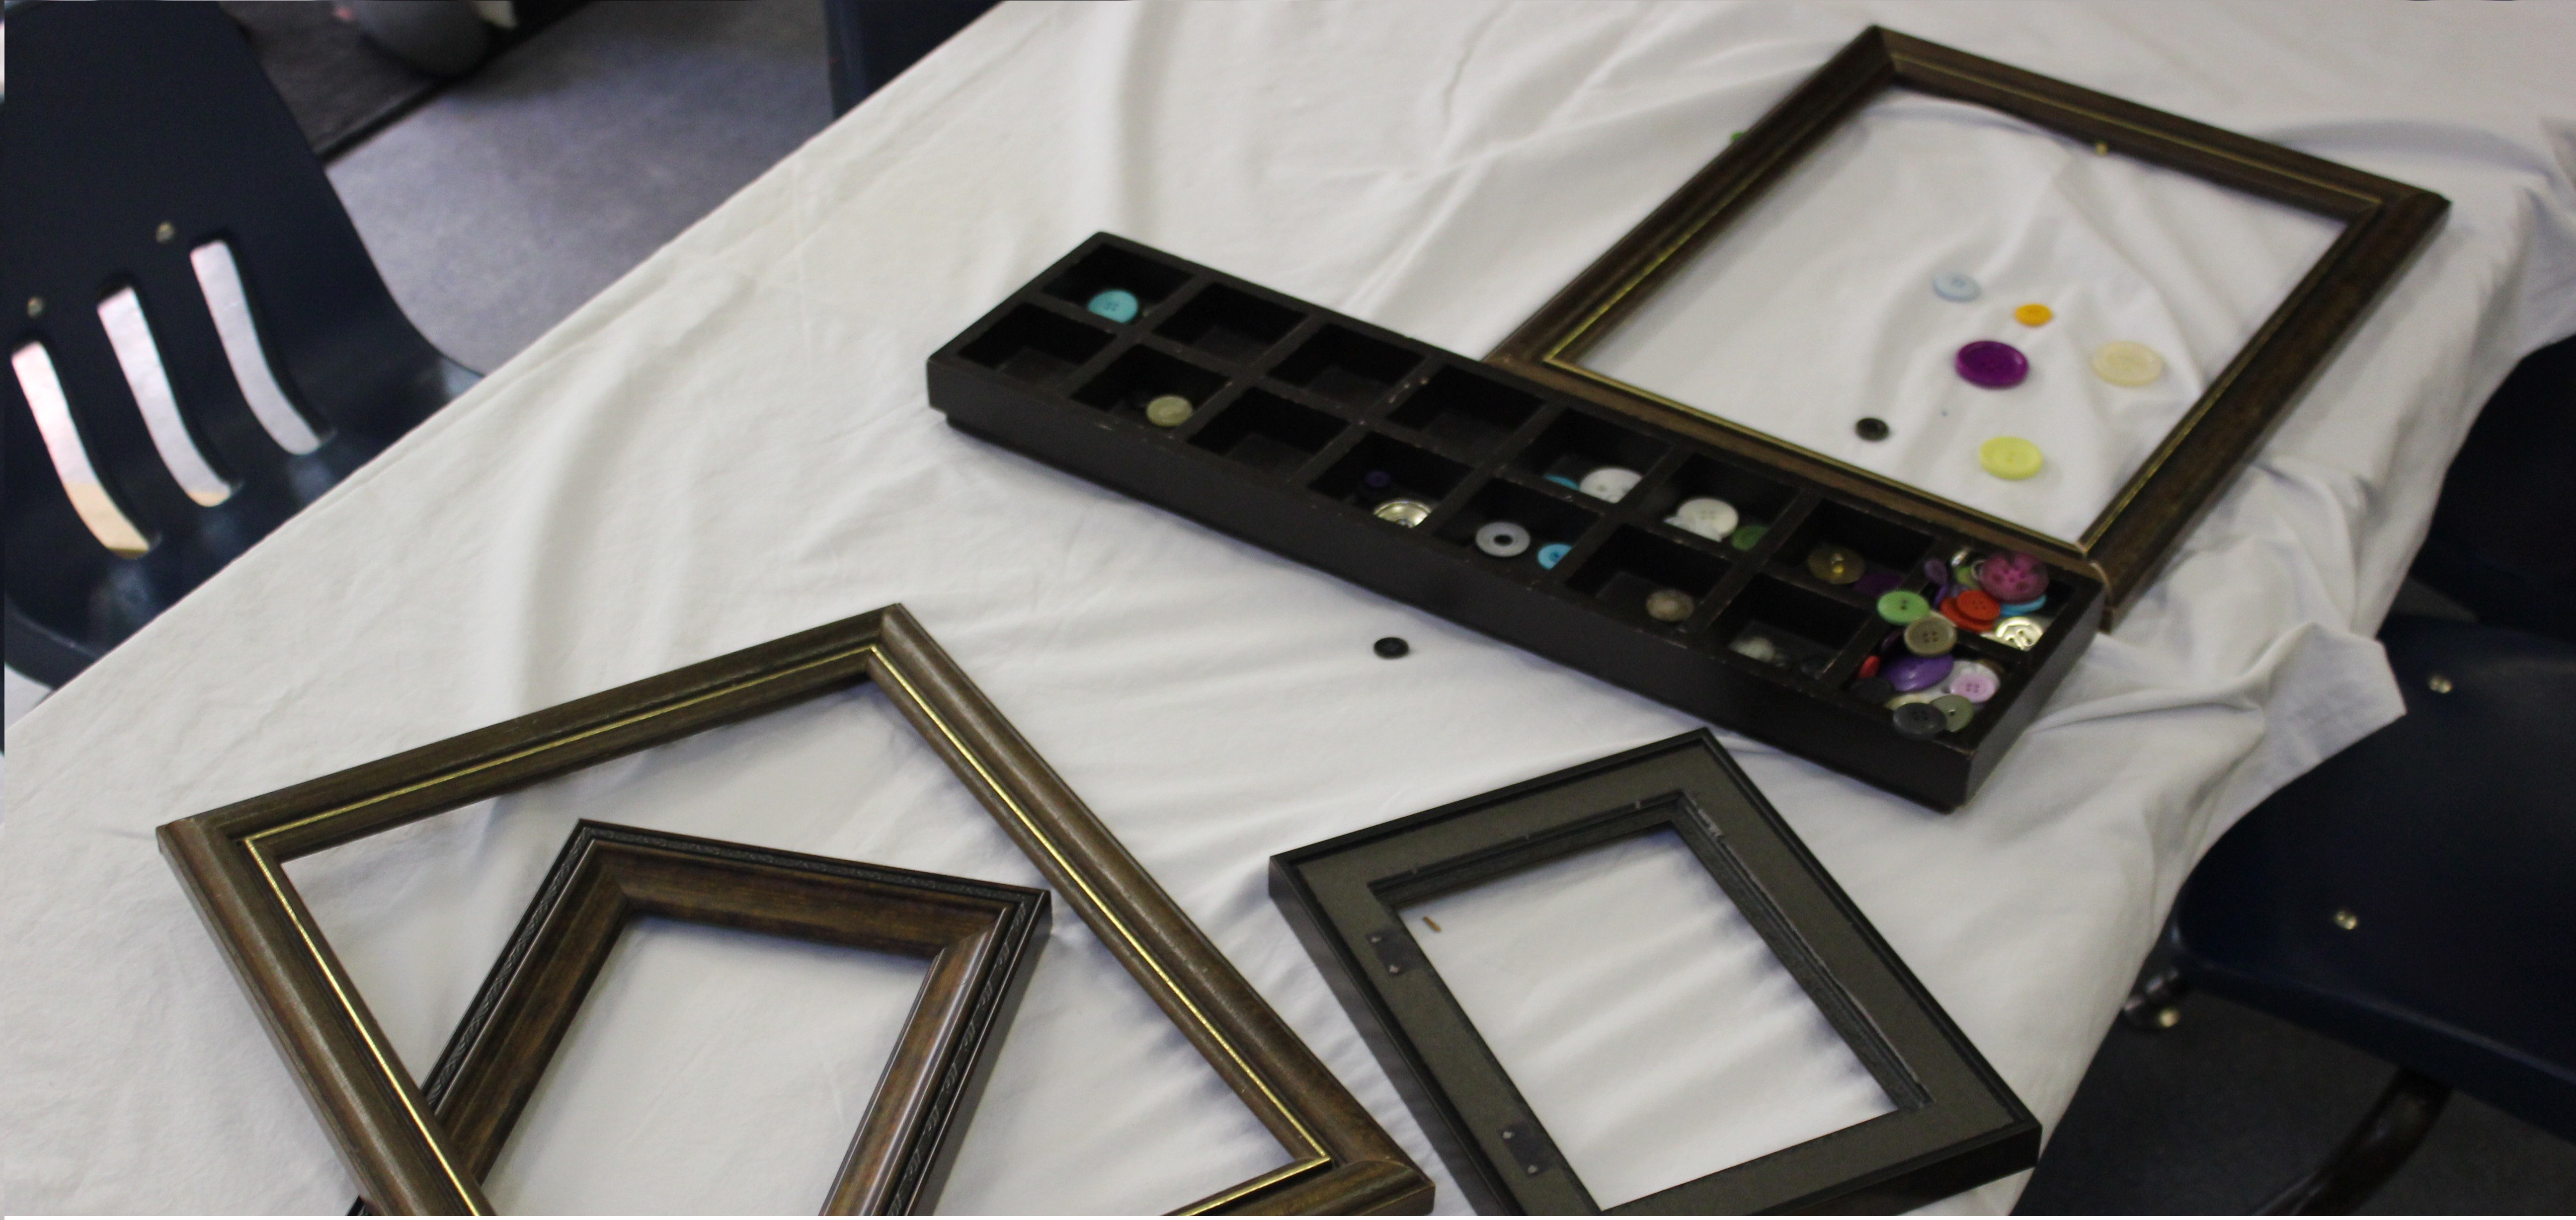 Picture frames and buttons on a table.